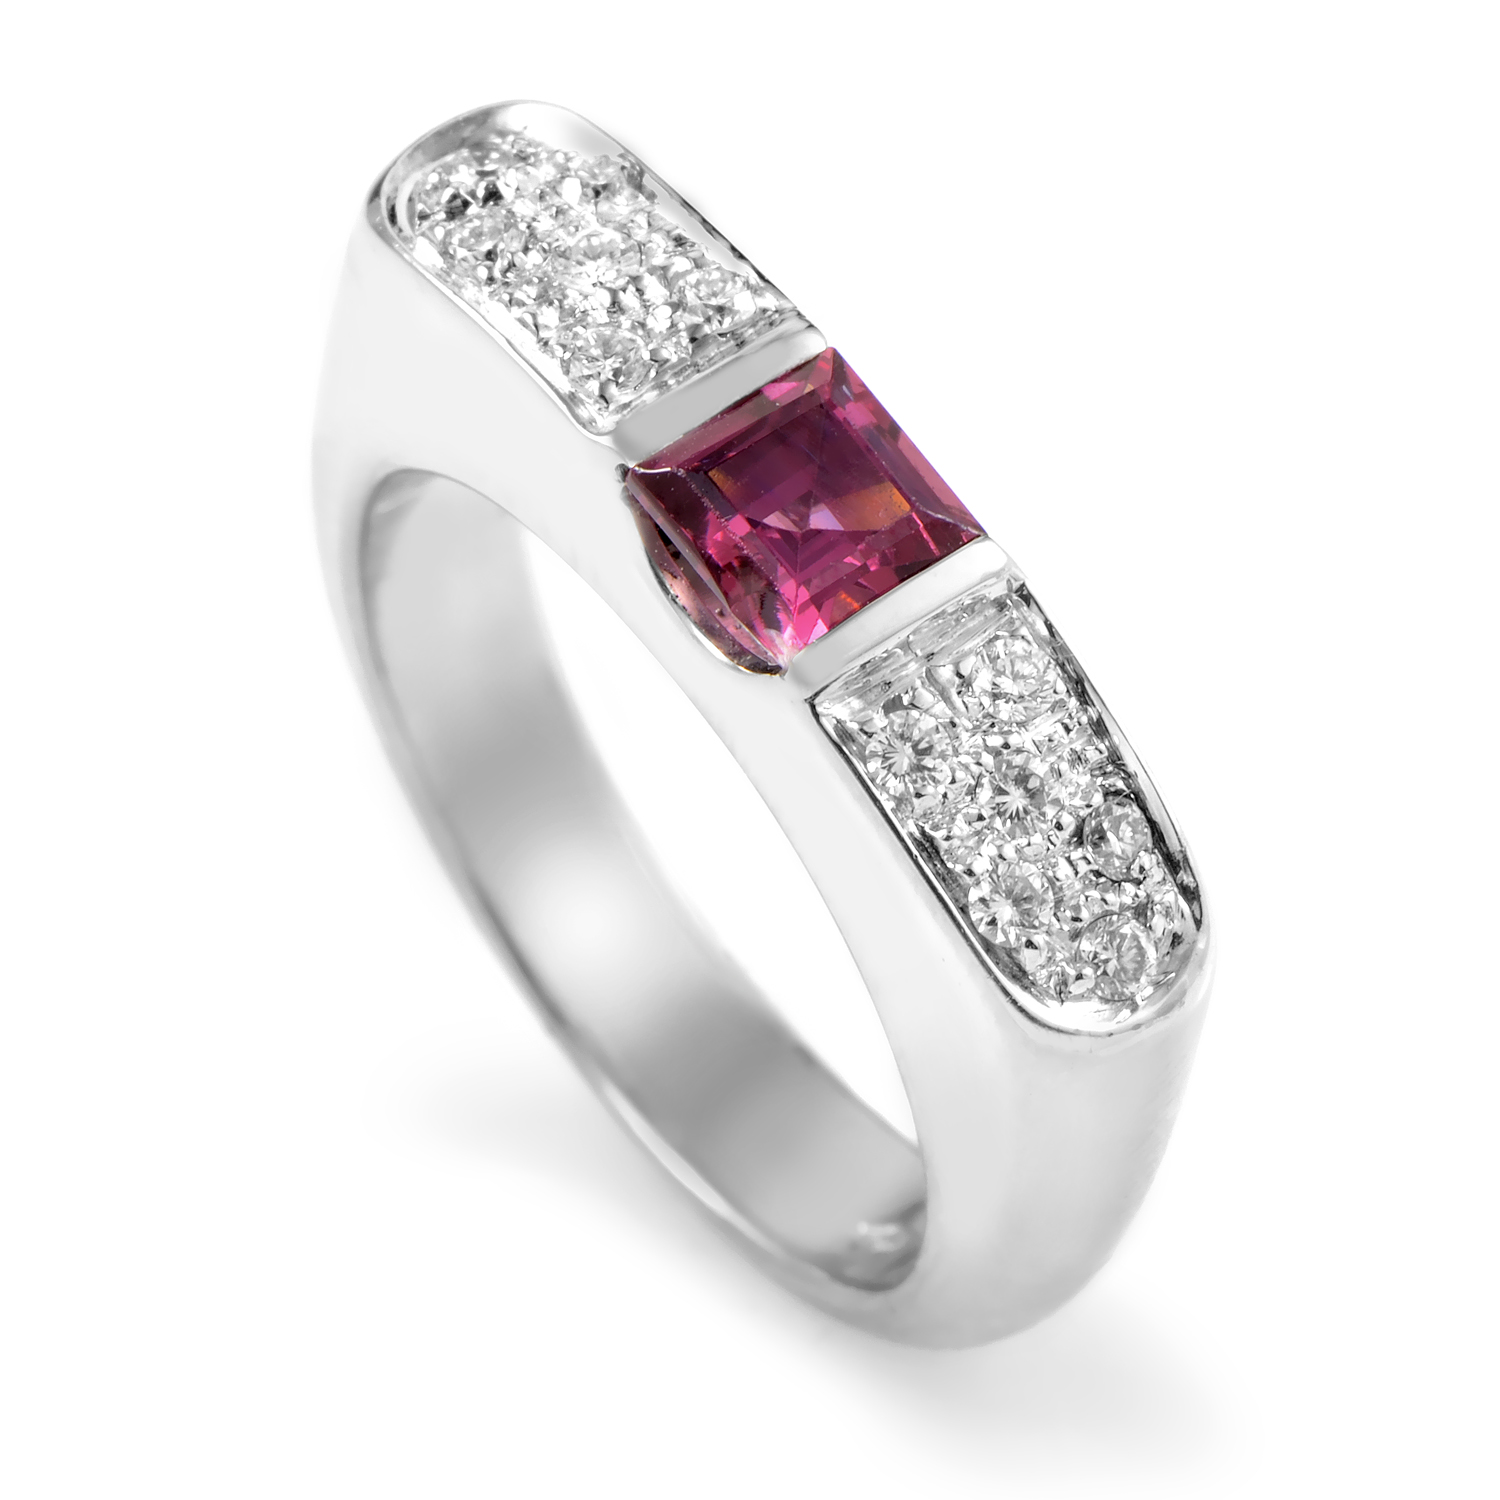 18K White Gold Diamond & Tourmaline Ring SN0098633ALTRM